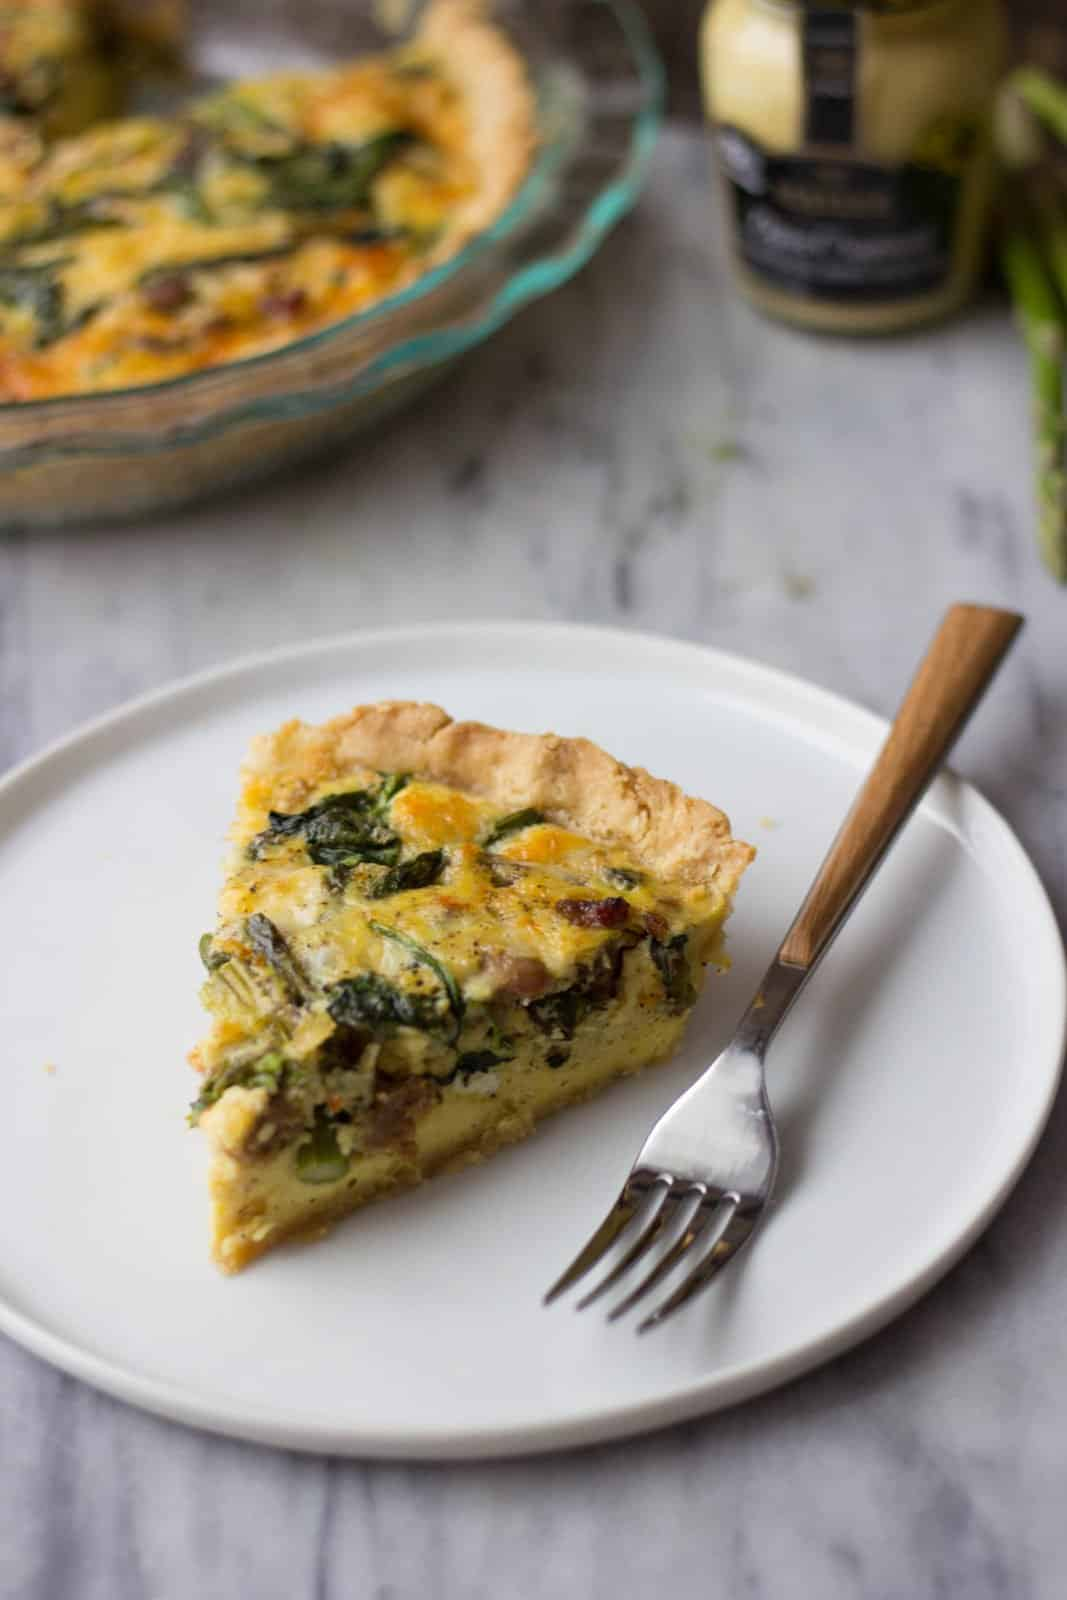 Asparagus & Sausage Quiche as one of the featured healthy egg recipes.